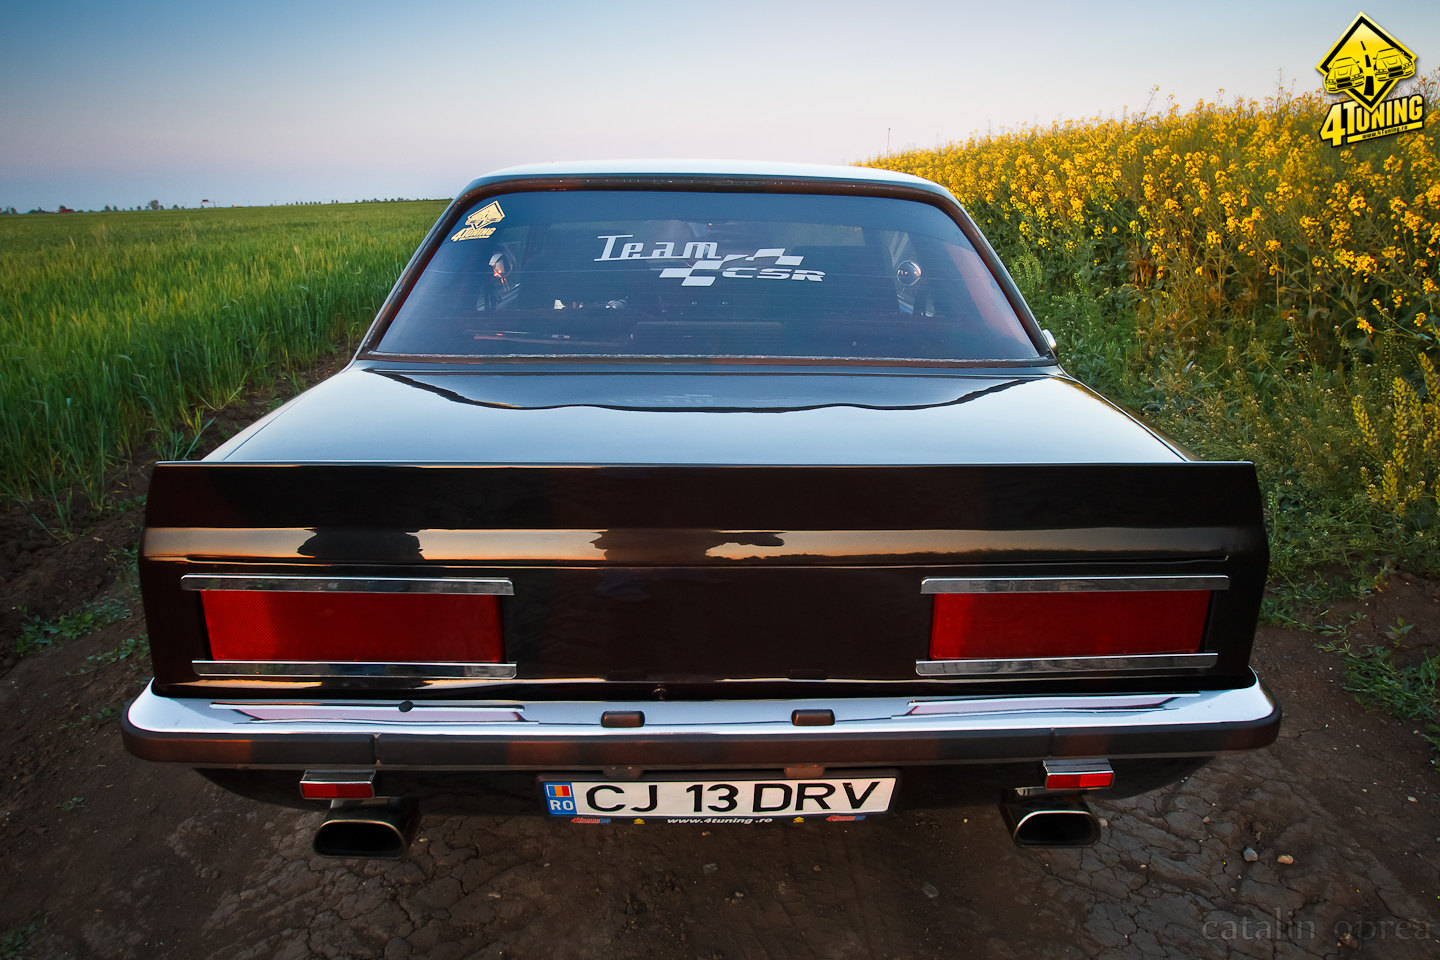 Pin Poza Ford Taunus By The Driver on Pinterest